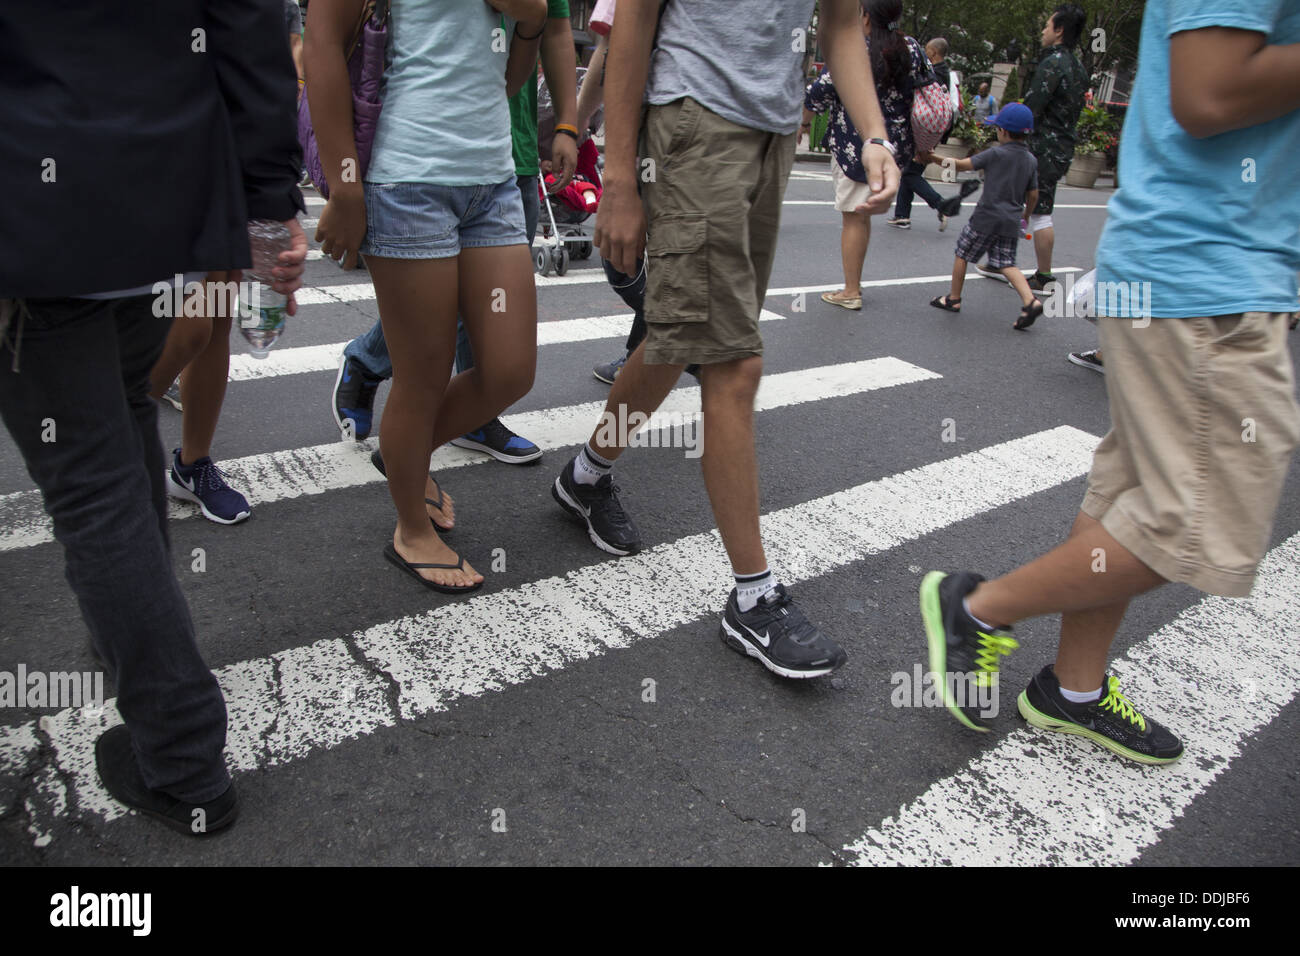 Crosswalk, Times Square, Manhattan, NYC. - Stock Image